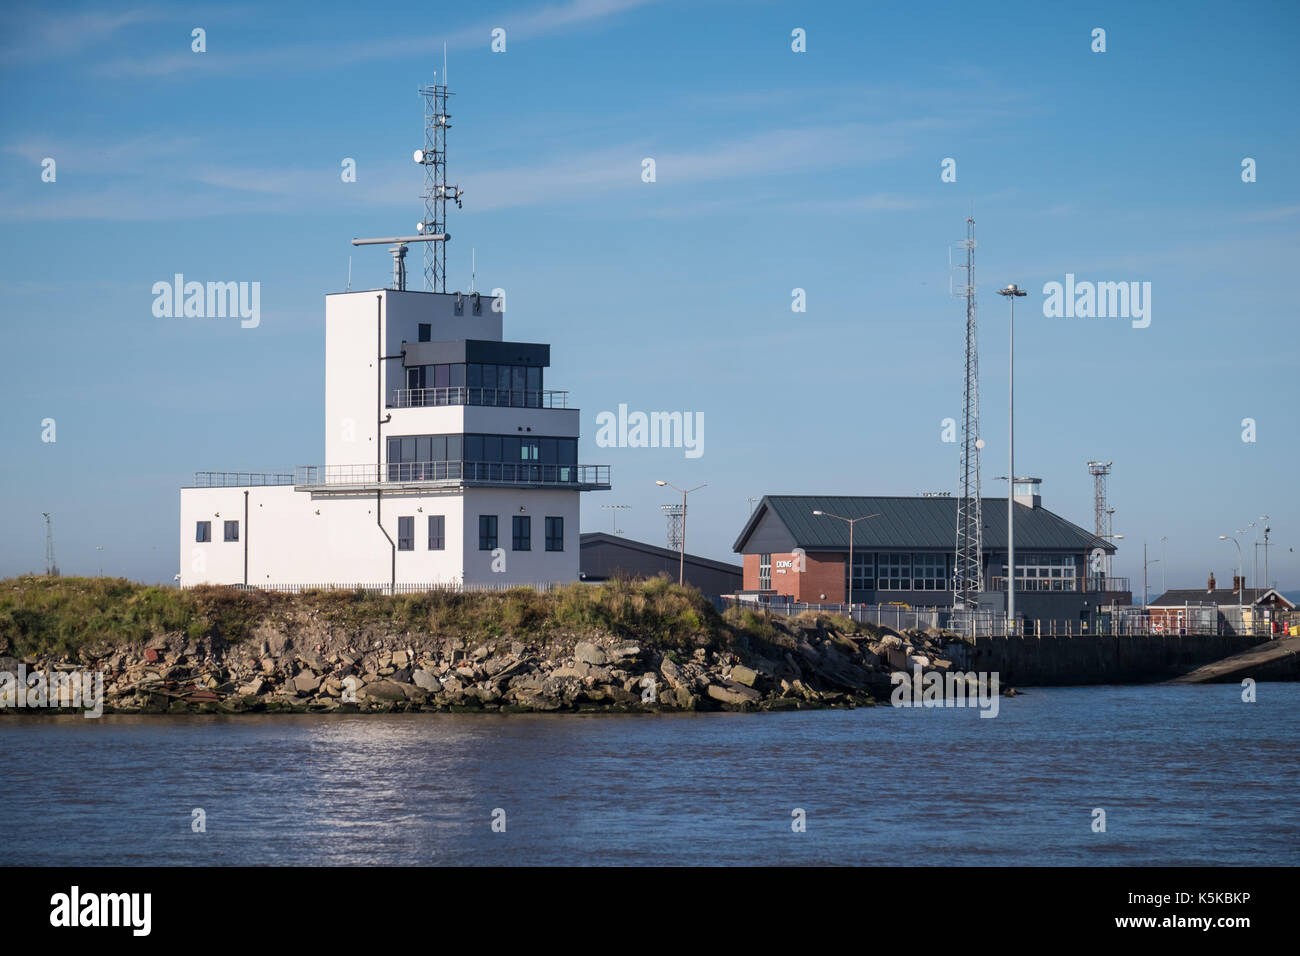 The new ABP Marine Control Centre located between Royal Dock and Fish Dock at the north end of the port estate in Grimsby - Stock Image